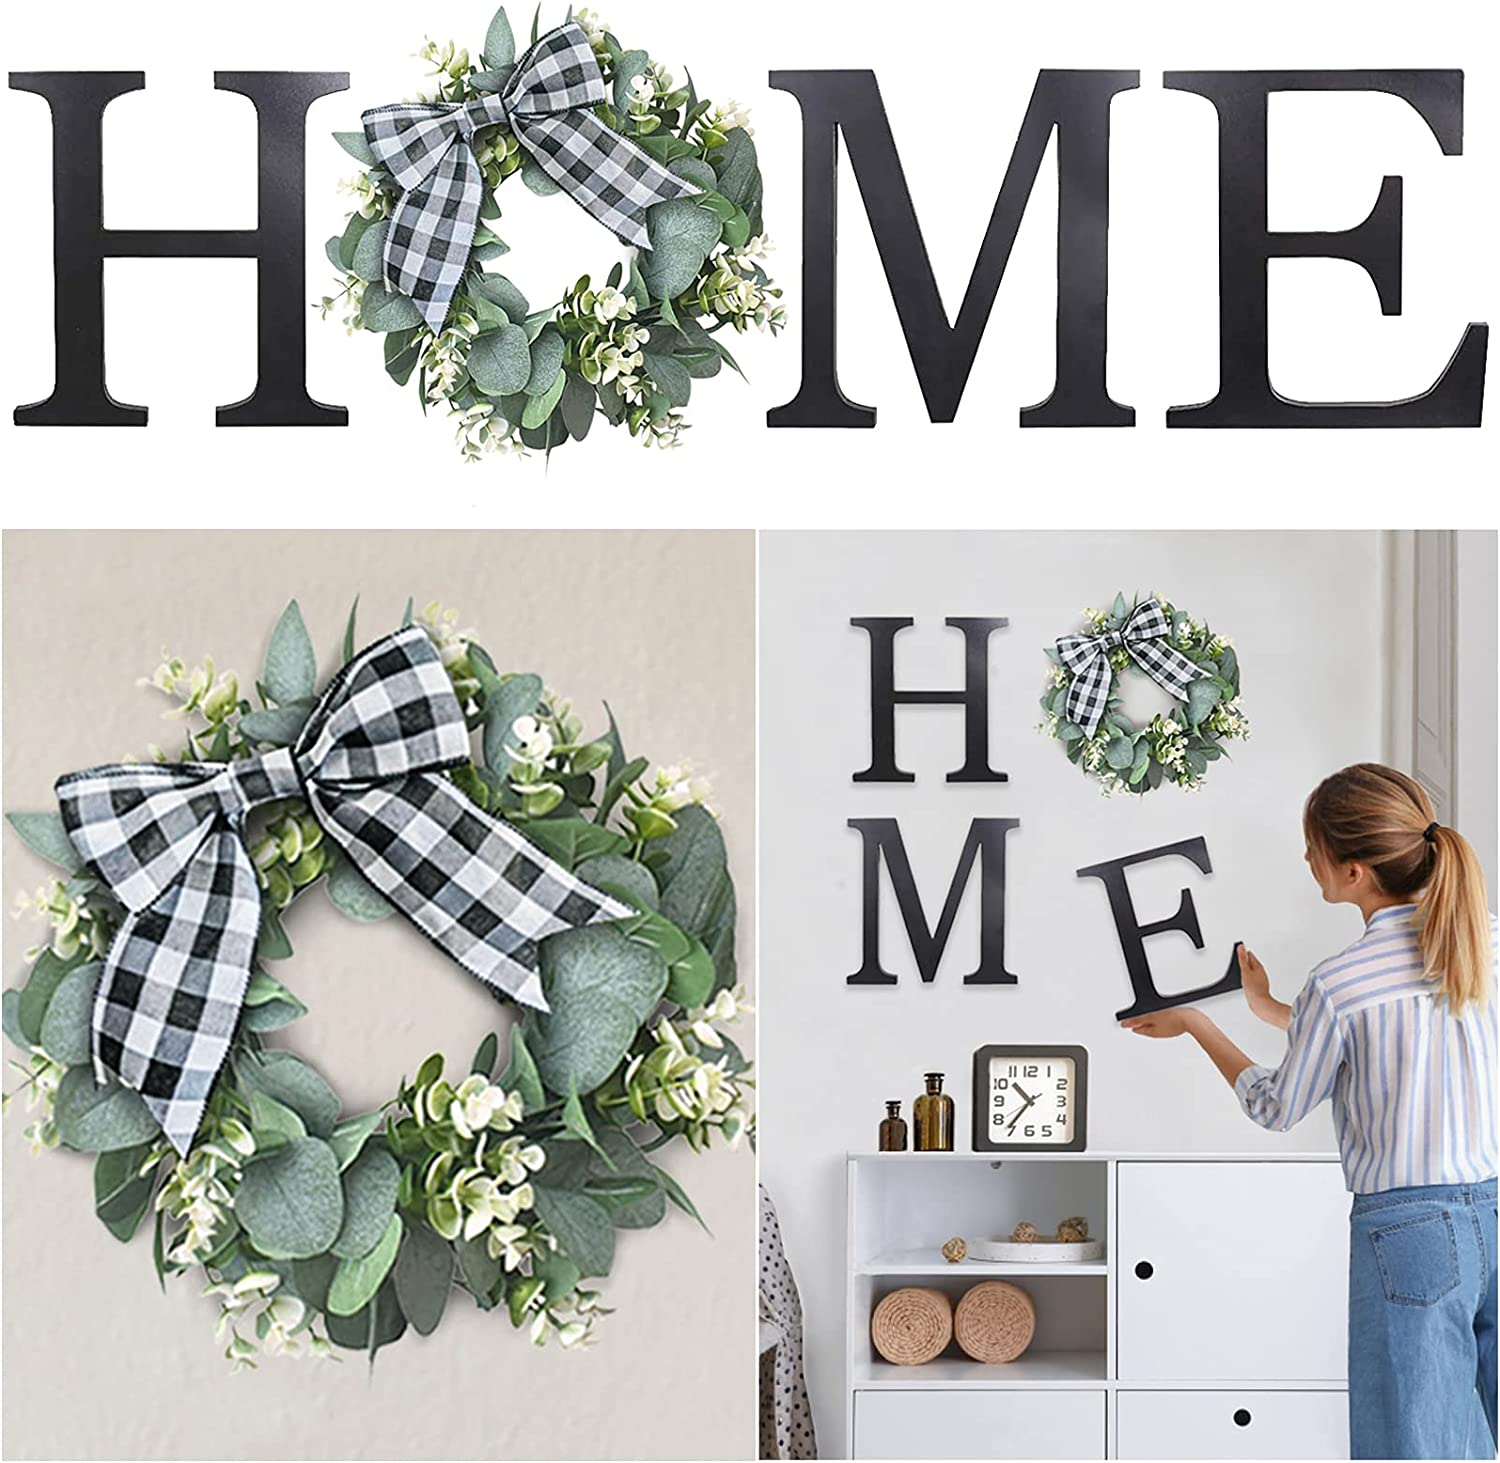 Cocomong Home Sign Wall Hanging Decor, Farmhouse Wood Letters for Wall Decor with Artificial Eucalyptus Wreath, Black Large Rustic Wall Decorations for Living Room Bedroom Dining Housewarming Gifts